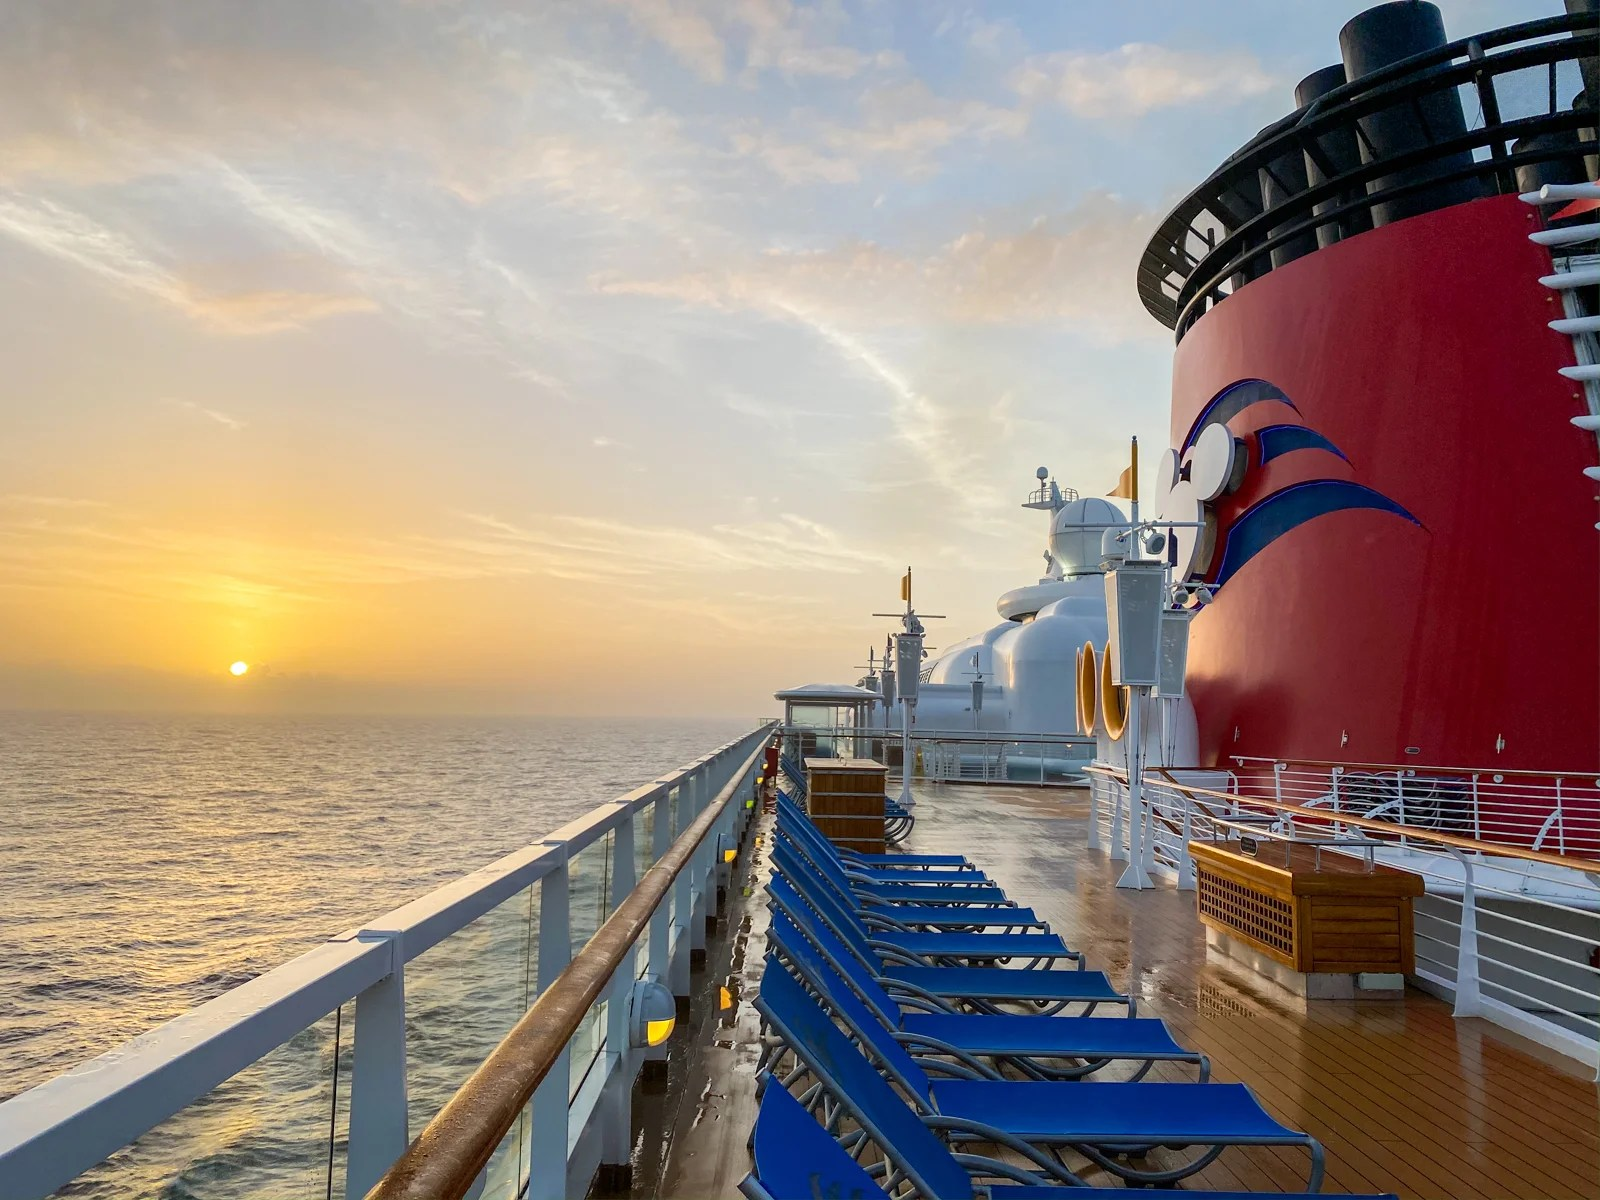 The Ultimate Guide To Disney Cruise Line Ships And Itineraries